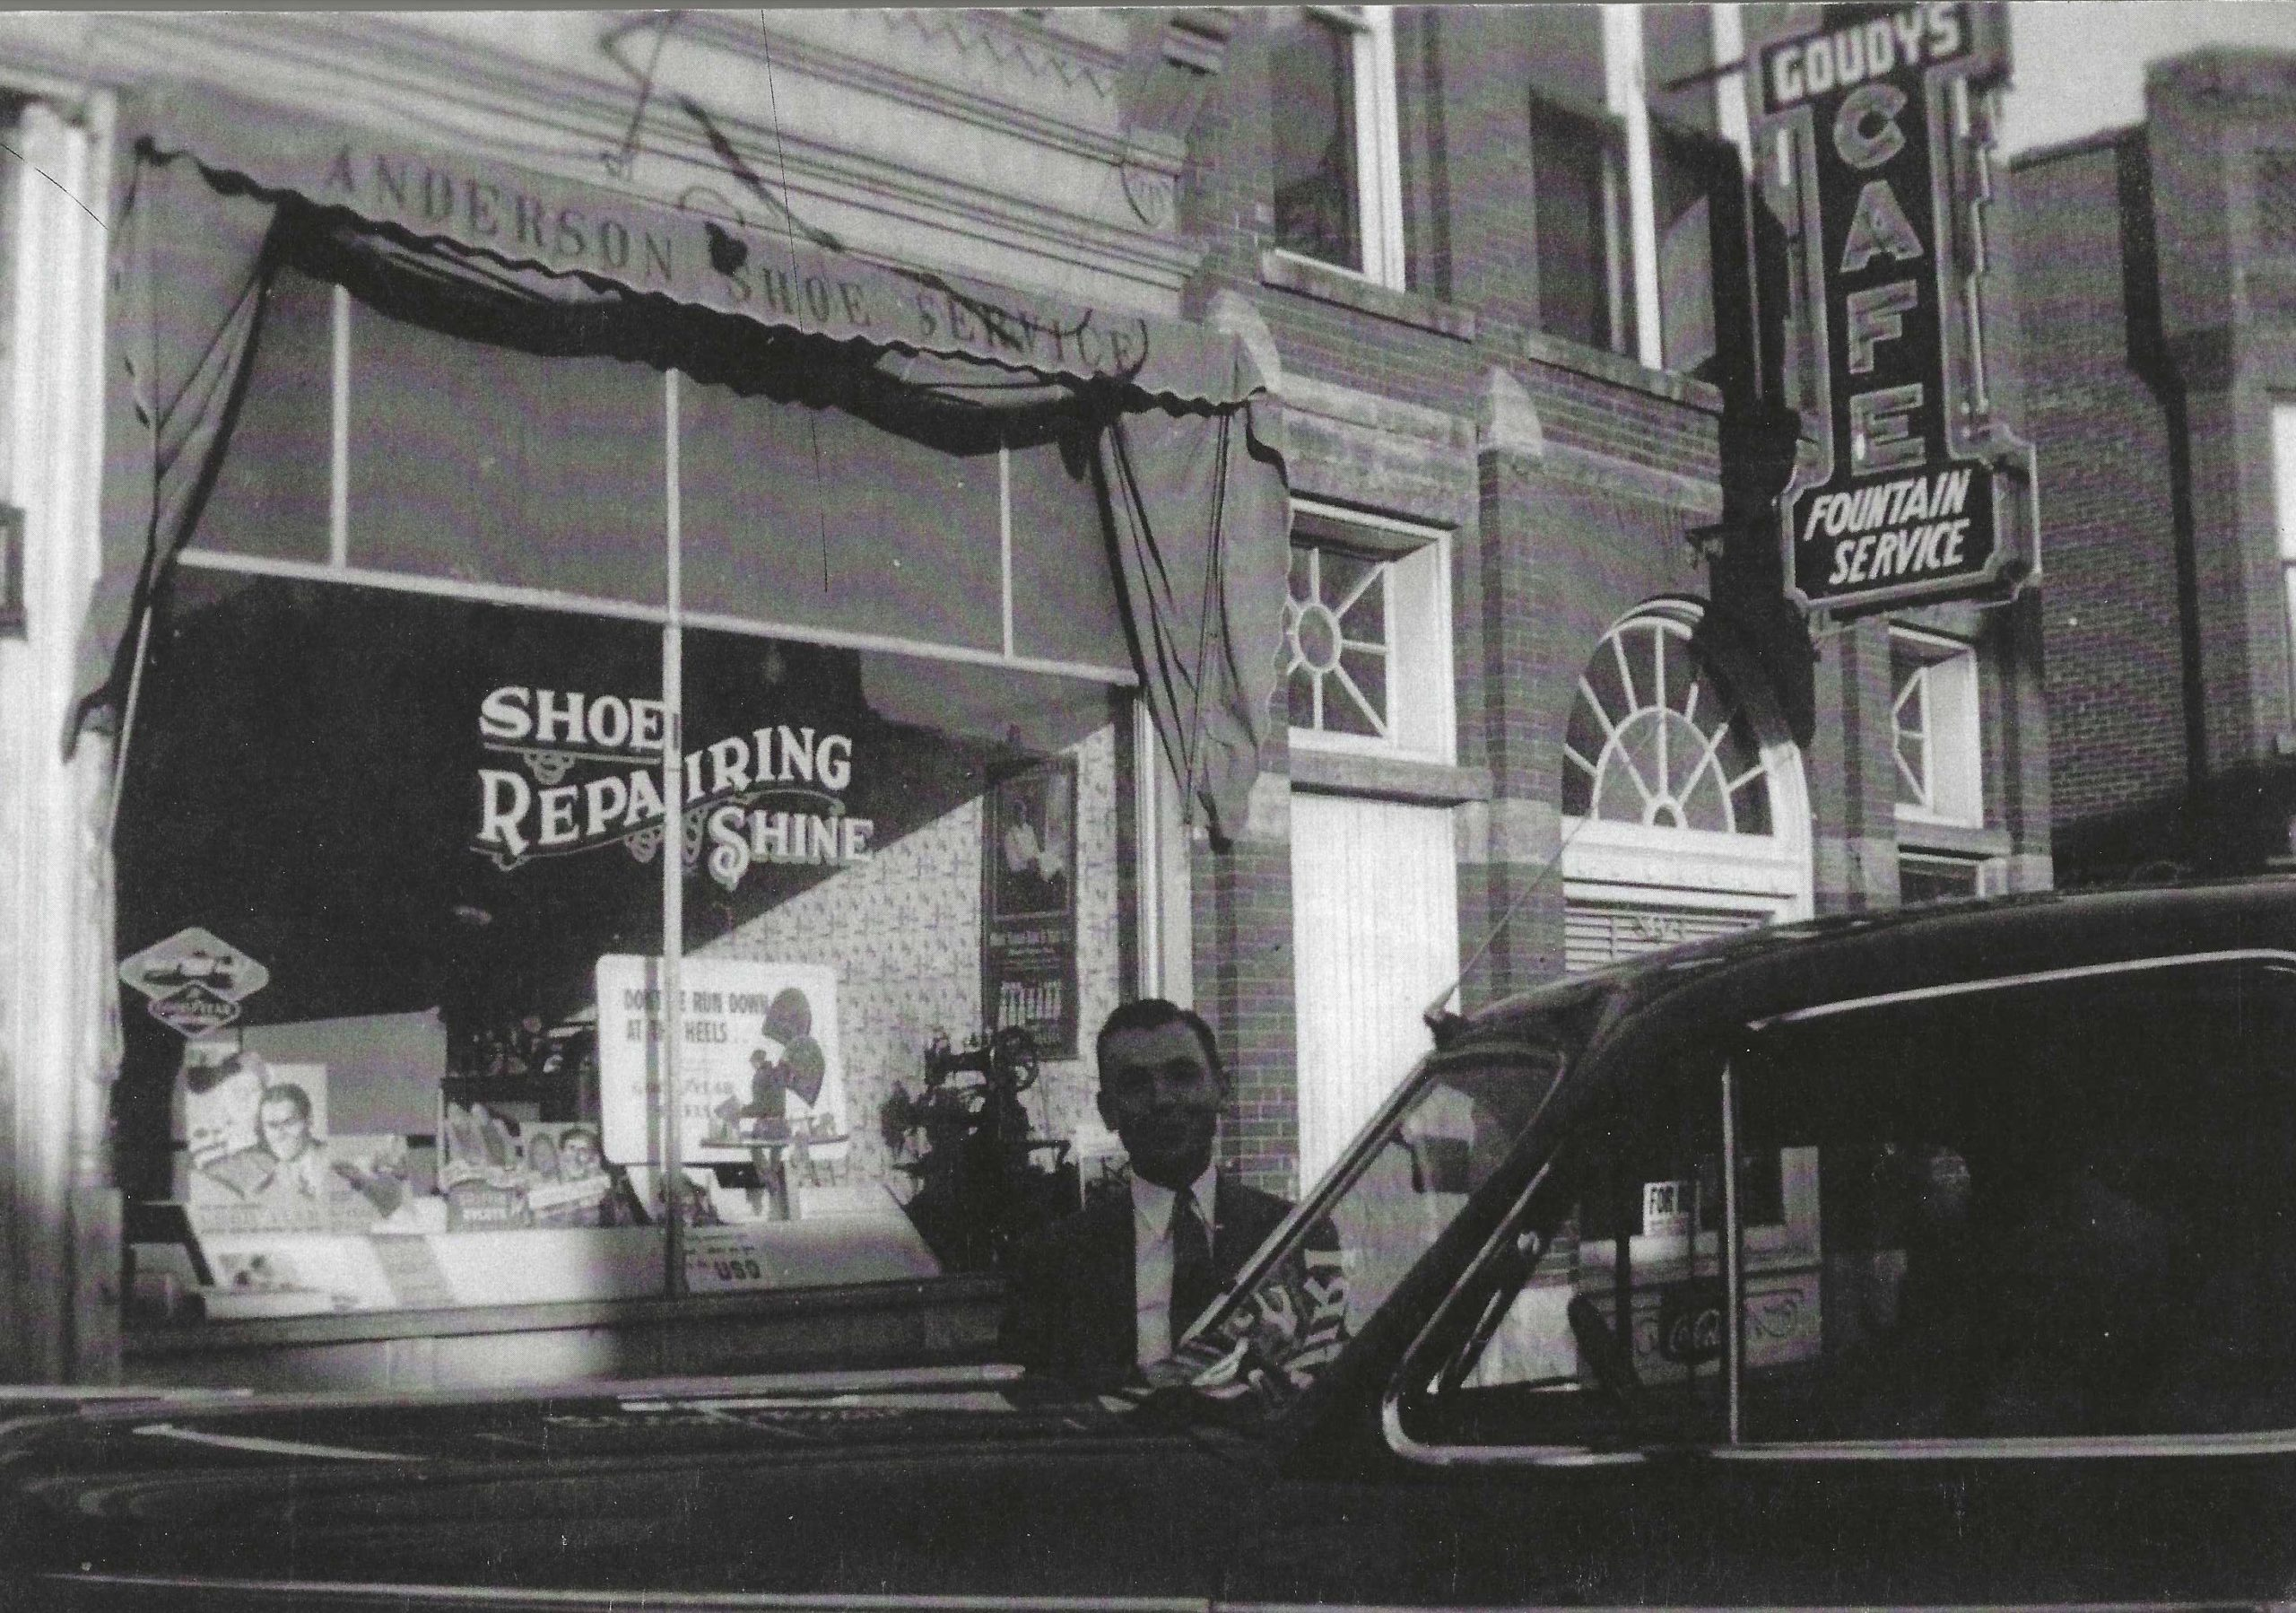 Photo of Anderson Shoe Service and Goudy Cafe